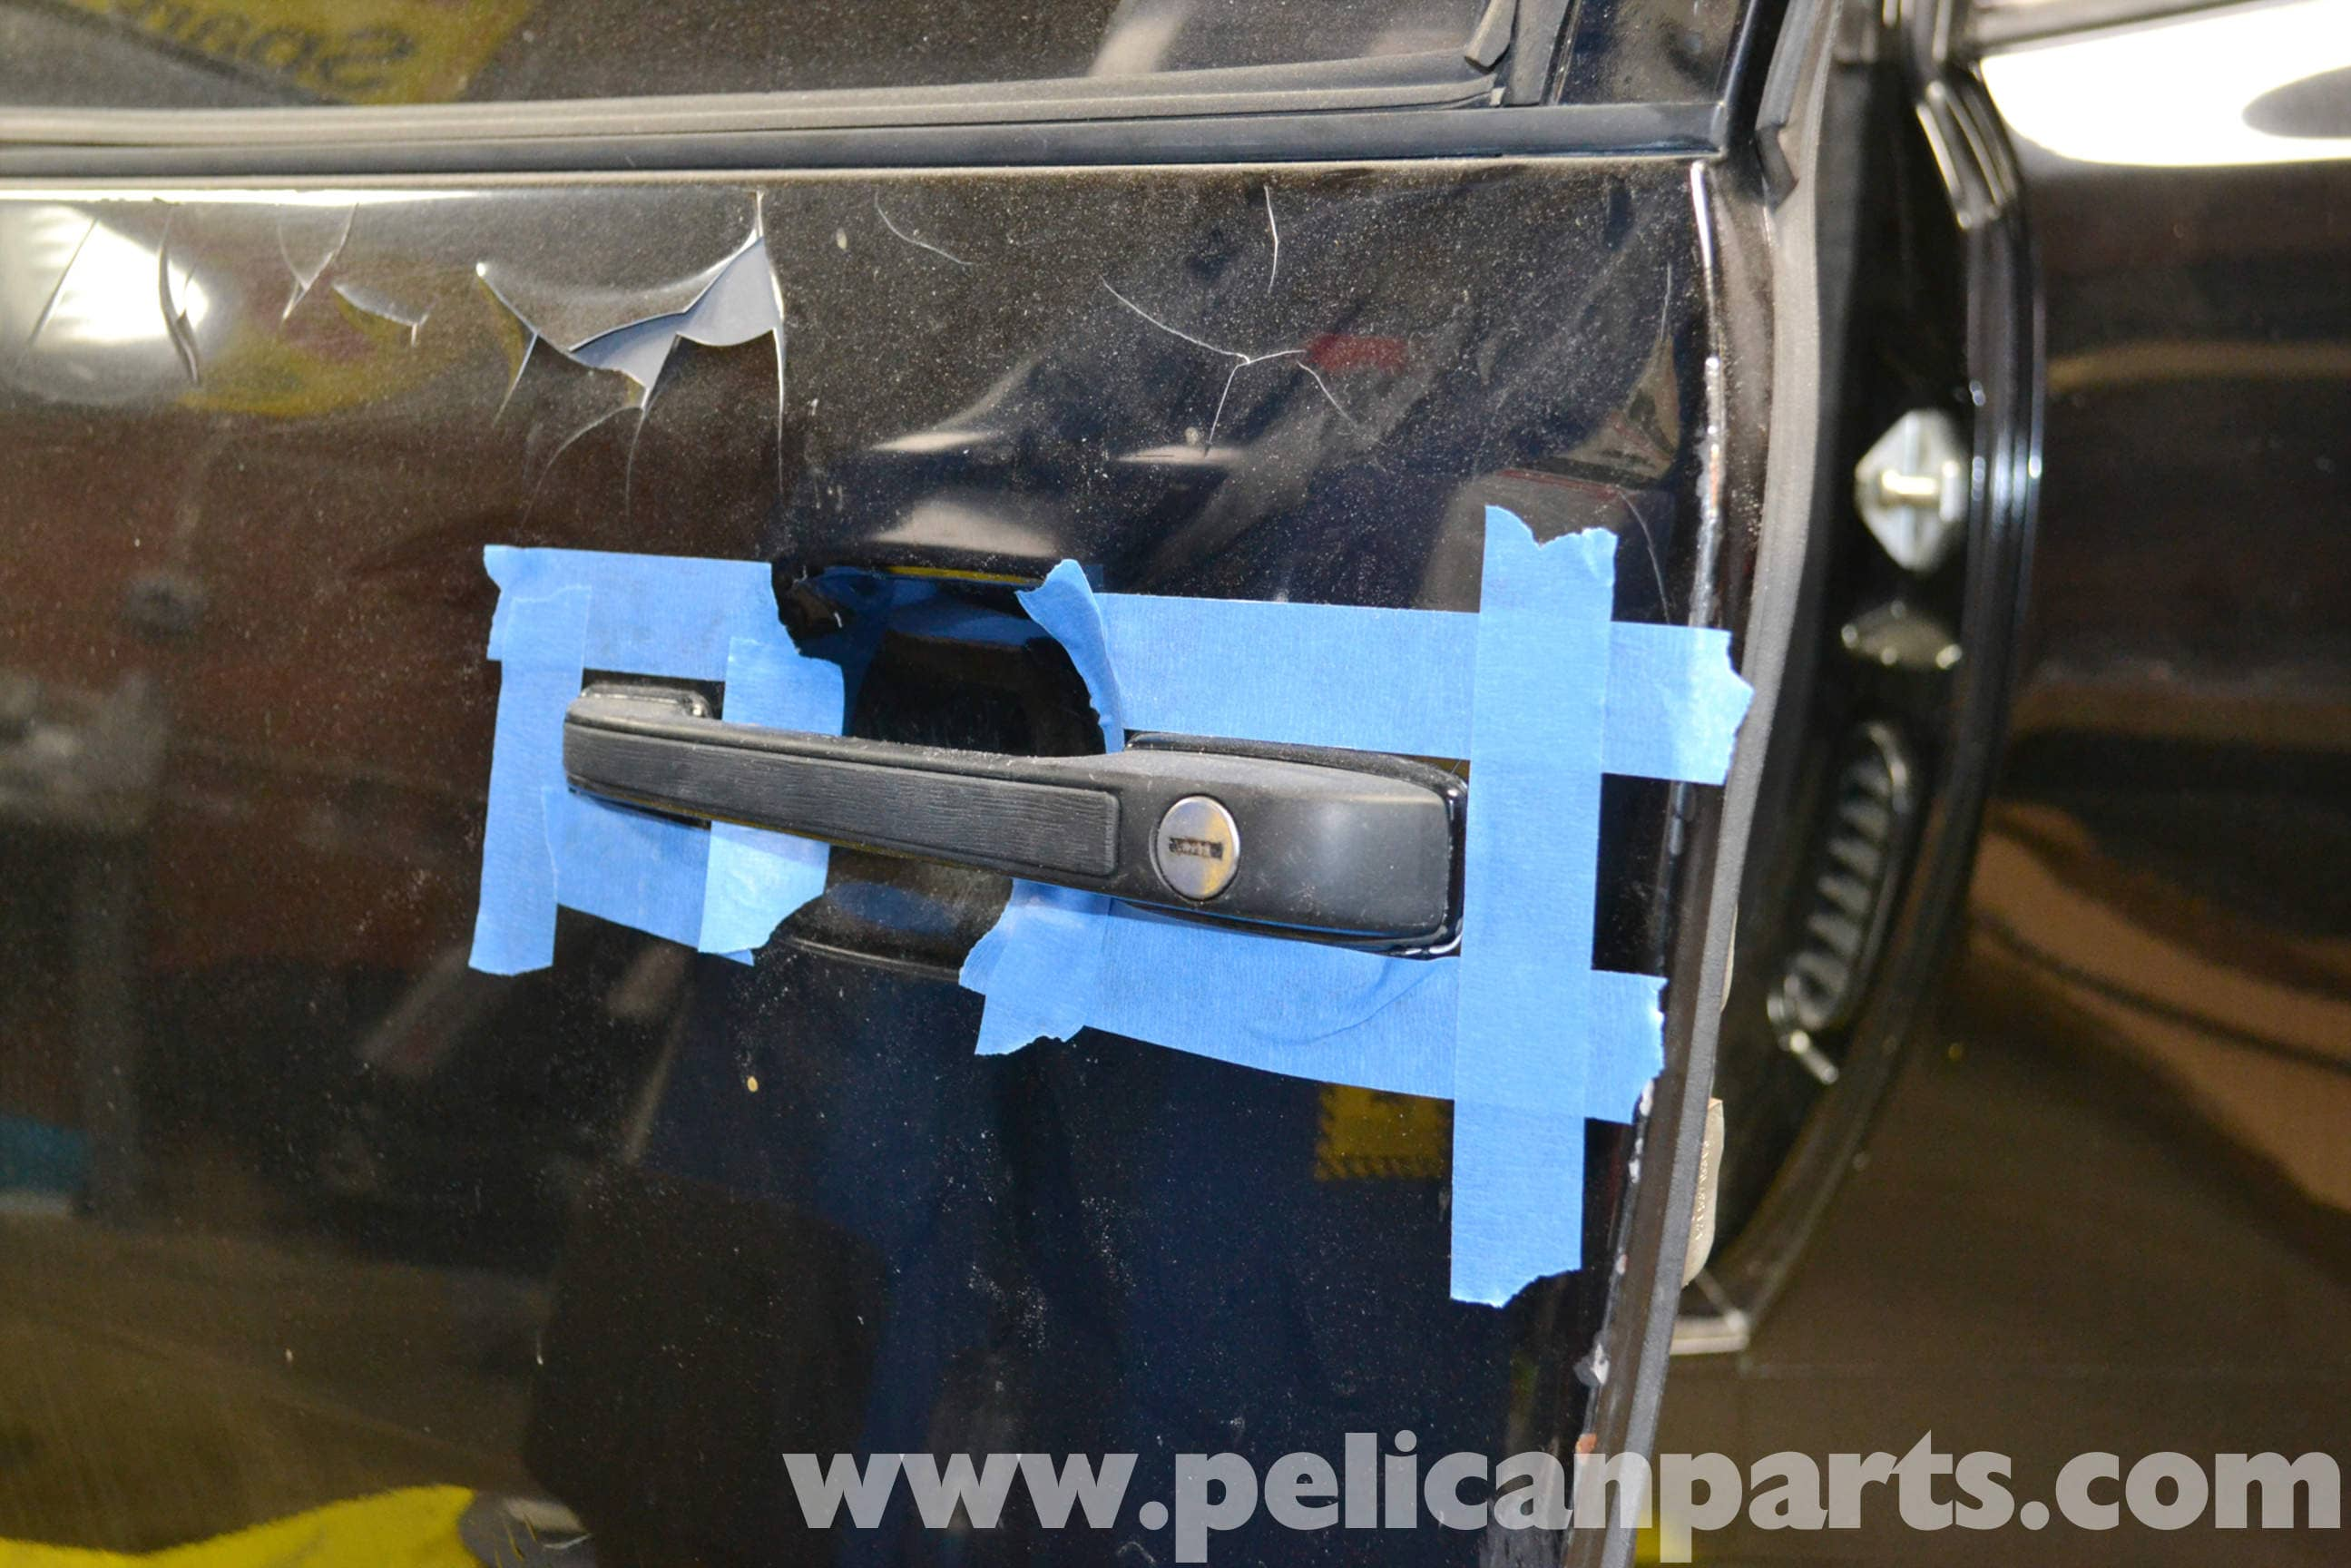 Porsche 944 Turbo Door Handle Removal (1986-1991) | Pelican Parts ...